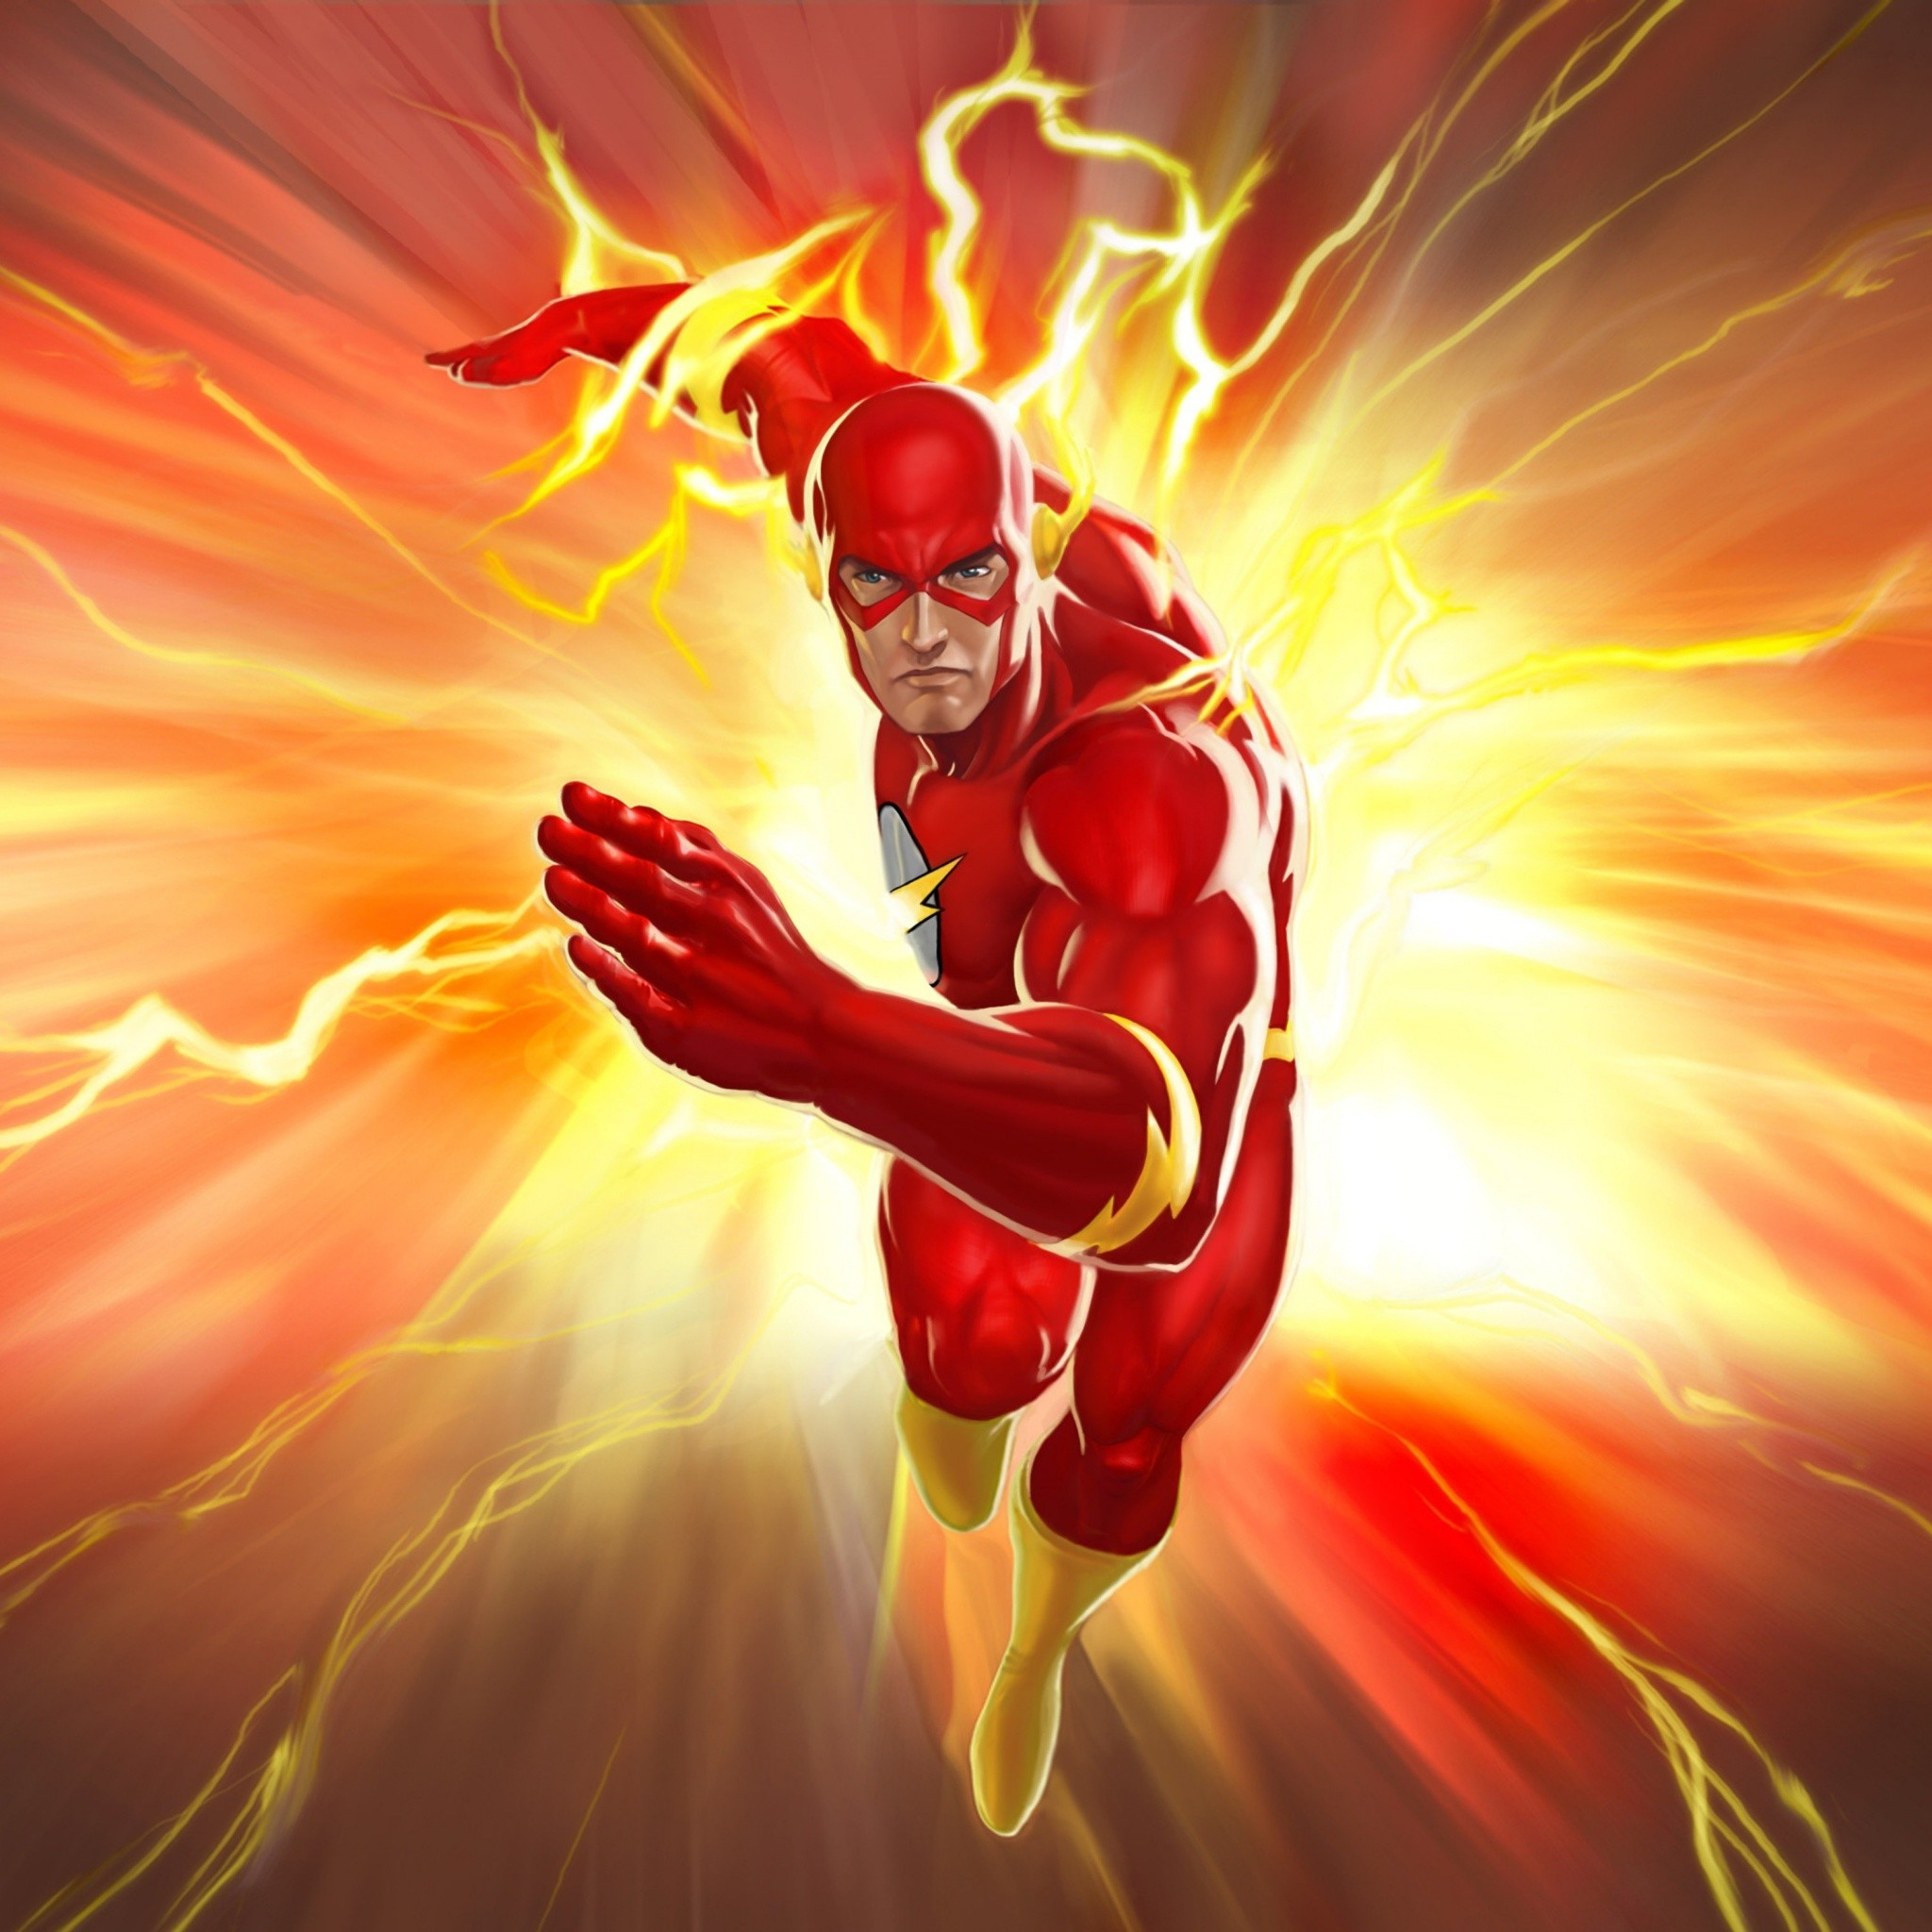 Flashing The Flash. Tap to see more Barry Allen The Flash iPhone, iPad &  Android wallpapers, backgrounds, fondos!